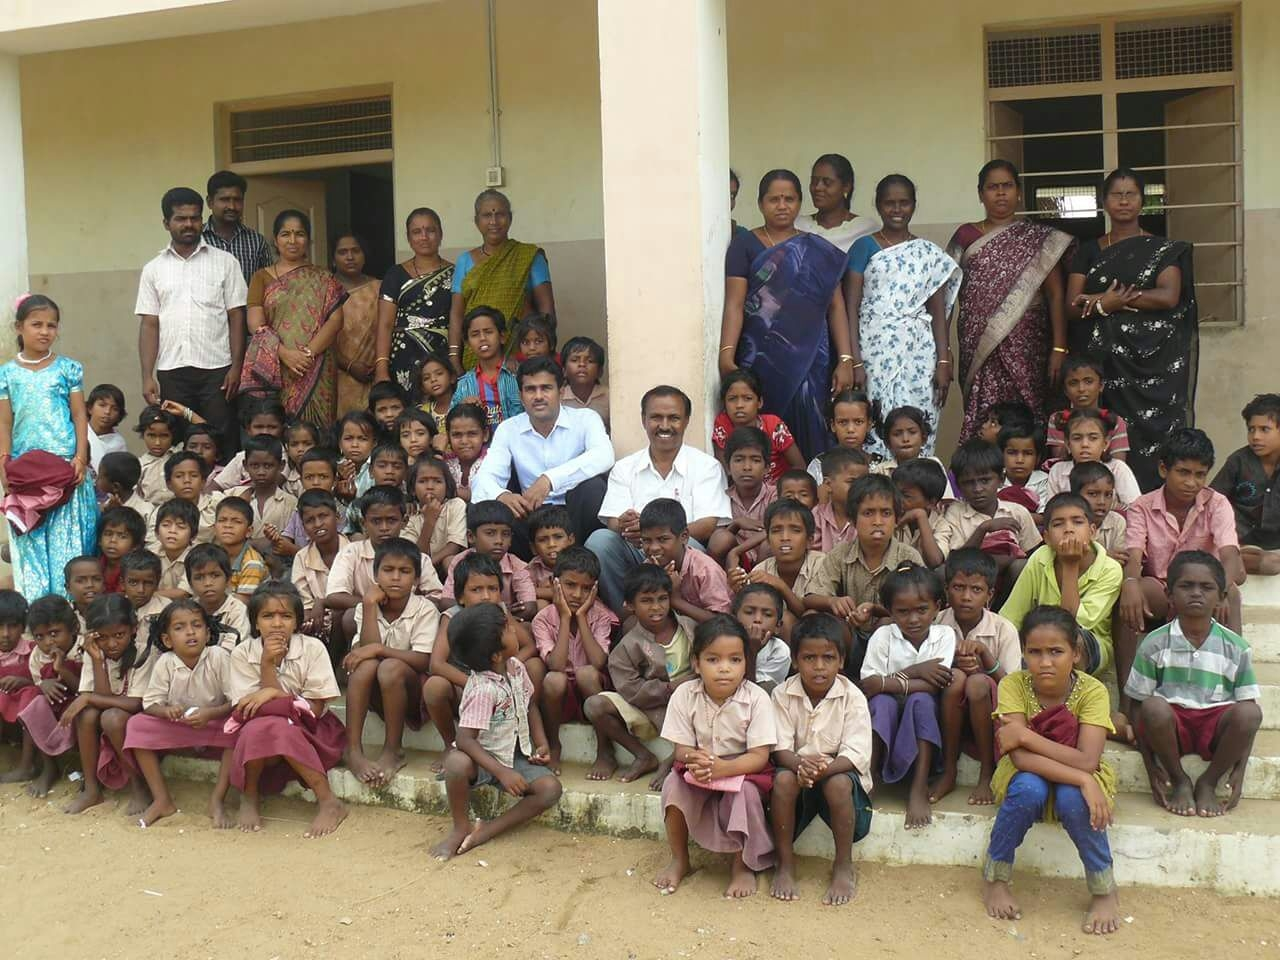 Teachers and students of the gurukulam